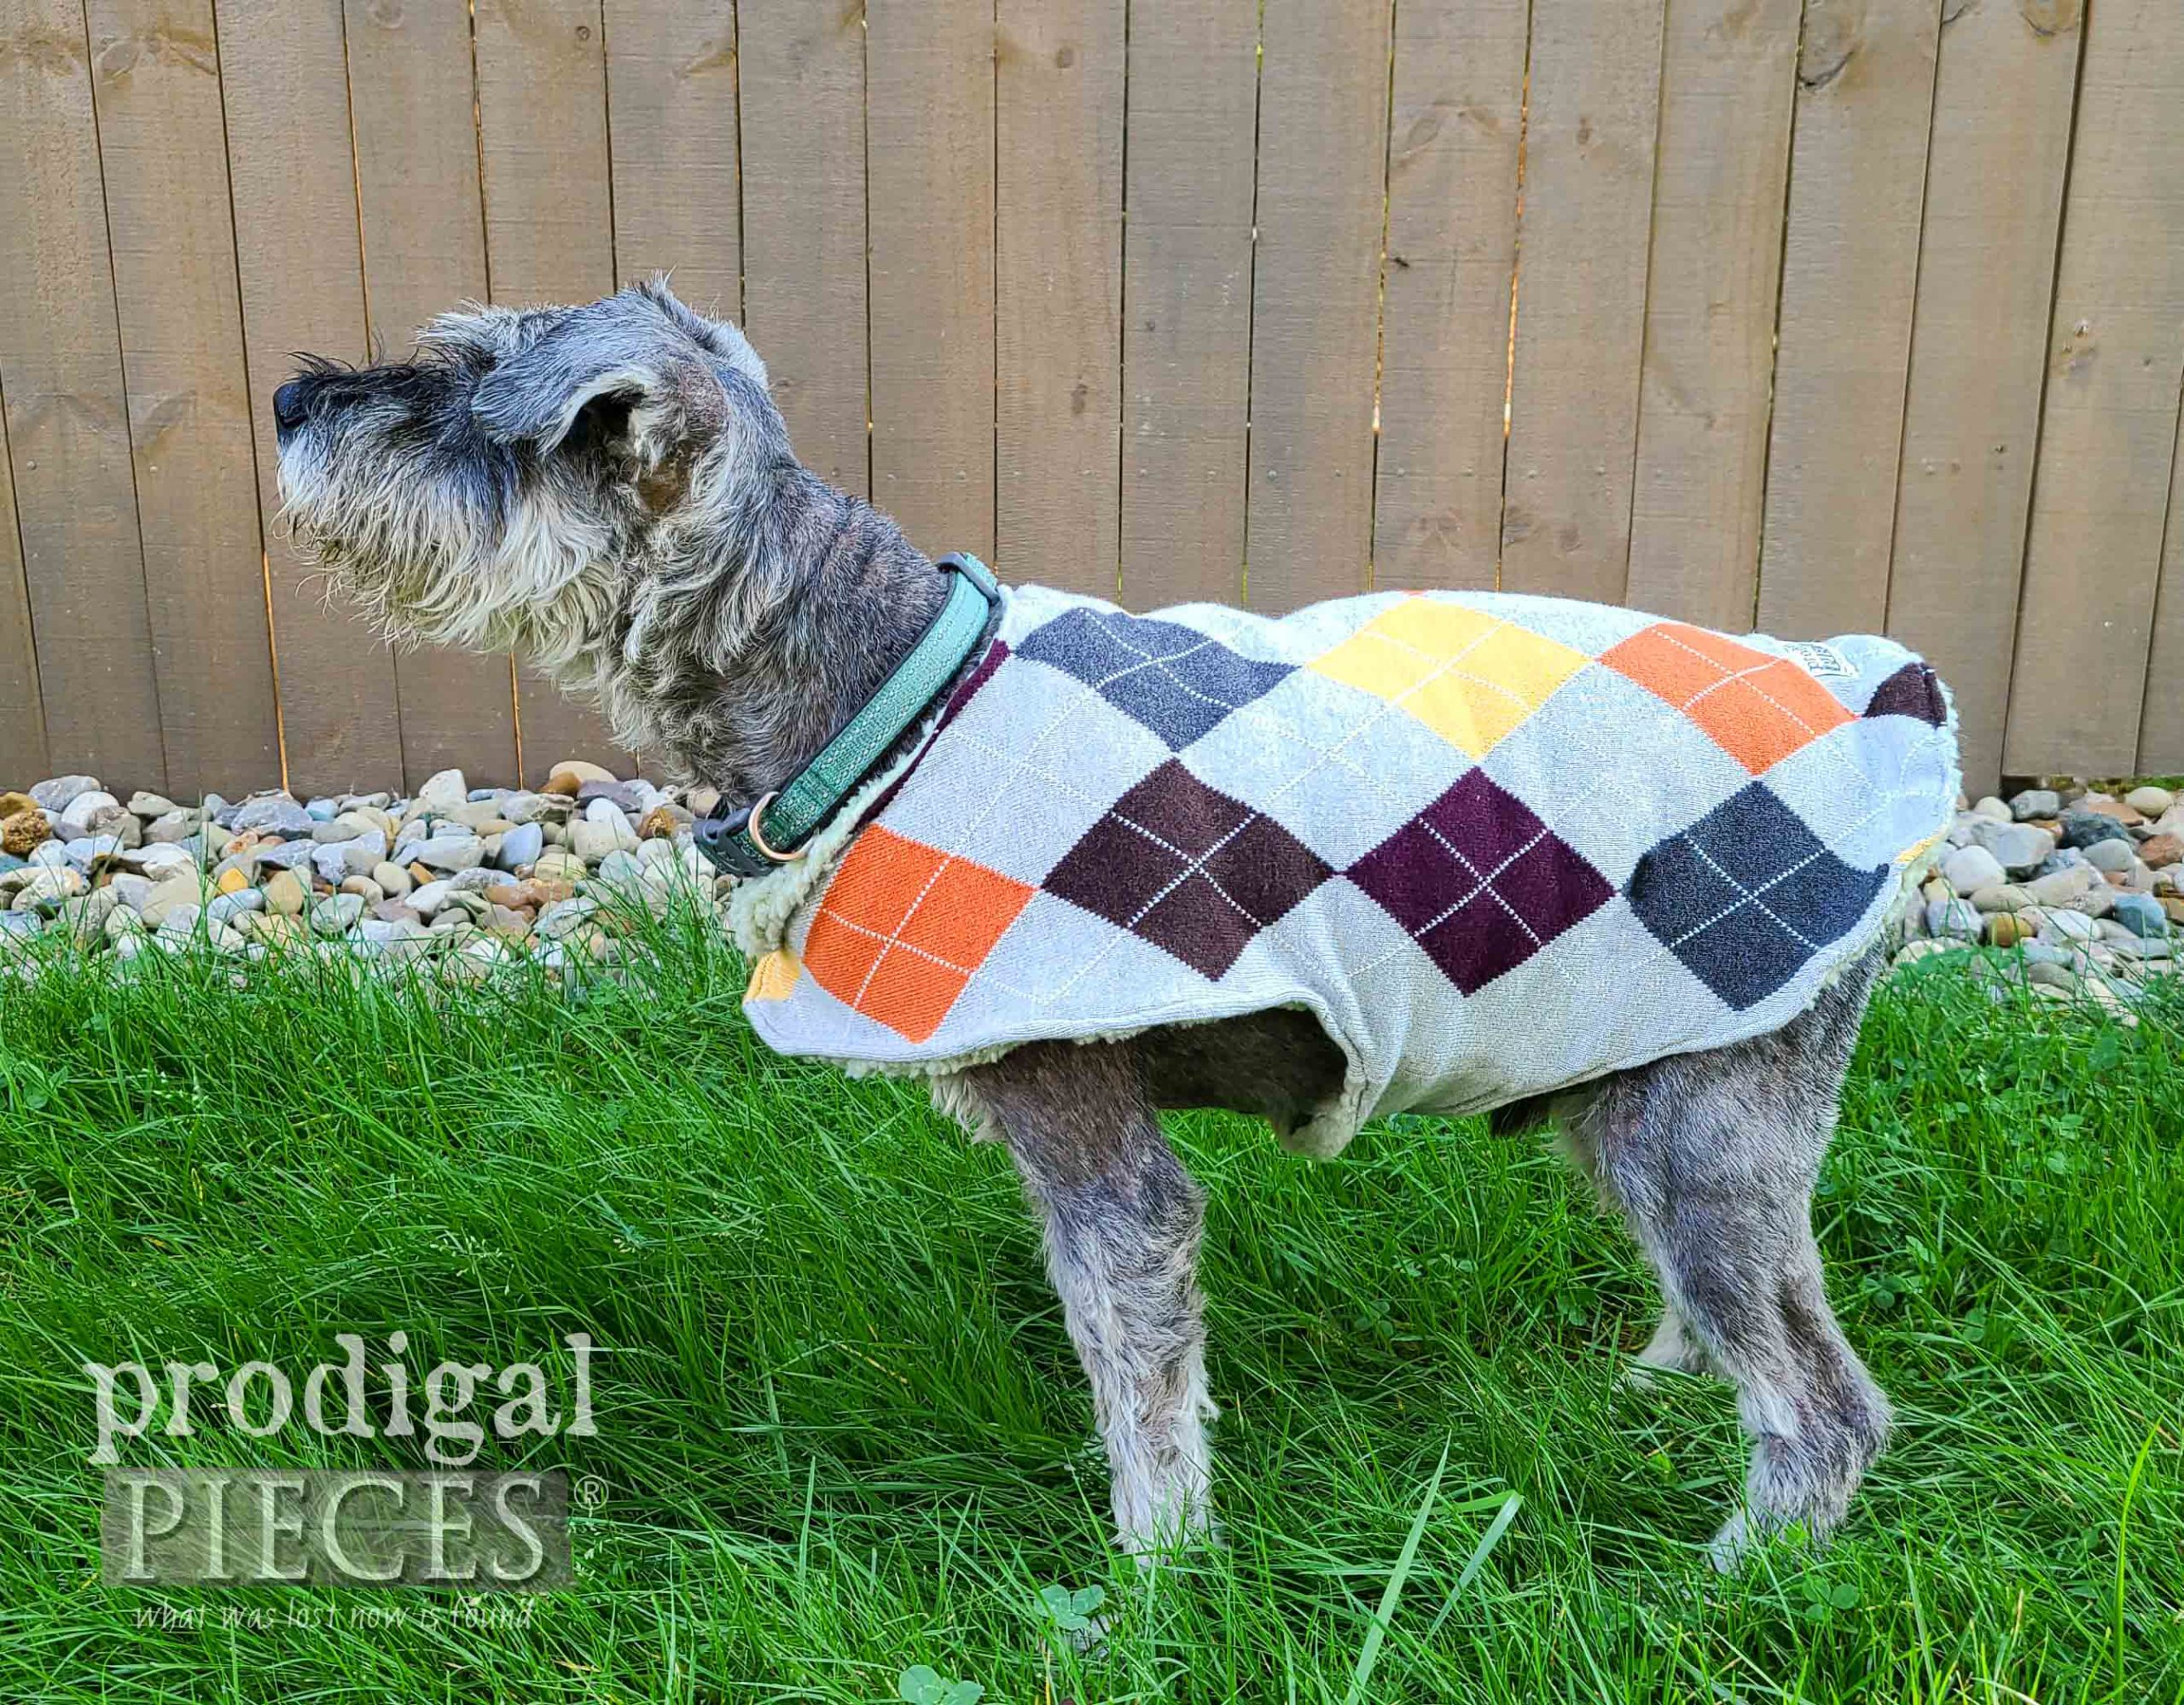 Handmade Dog Coat from Argyle Sweater by Larissa of Prodigal Pieces | prodigalpieces.com #prodigalpieces #diy #pets #dogs #handmade #diy